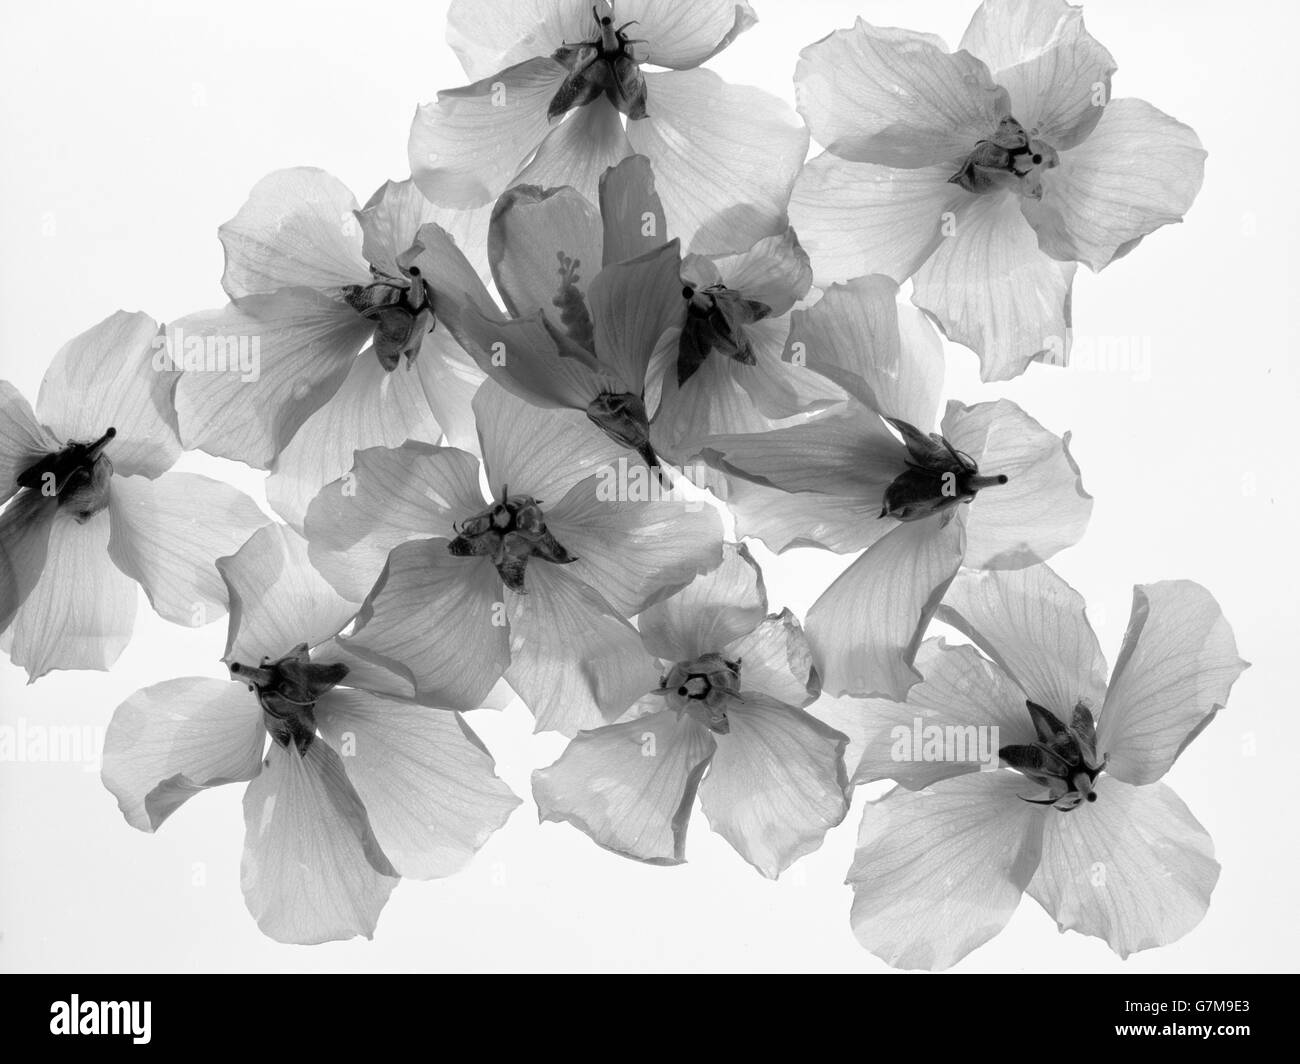 Flowers. Morning Glories on background with light passing through them. Artistic rendering - Stock Image